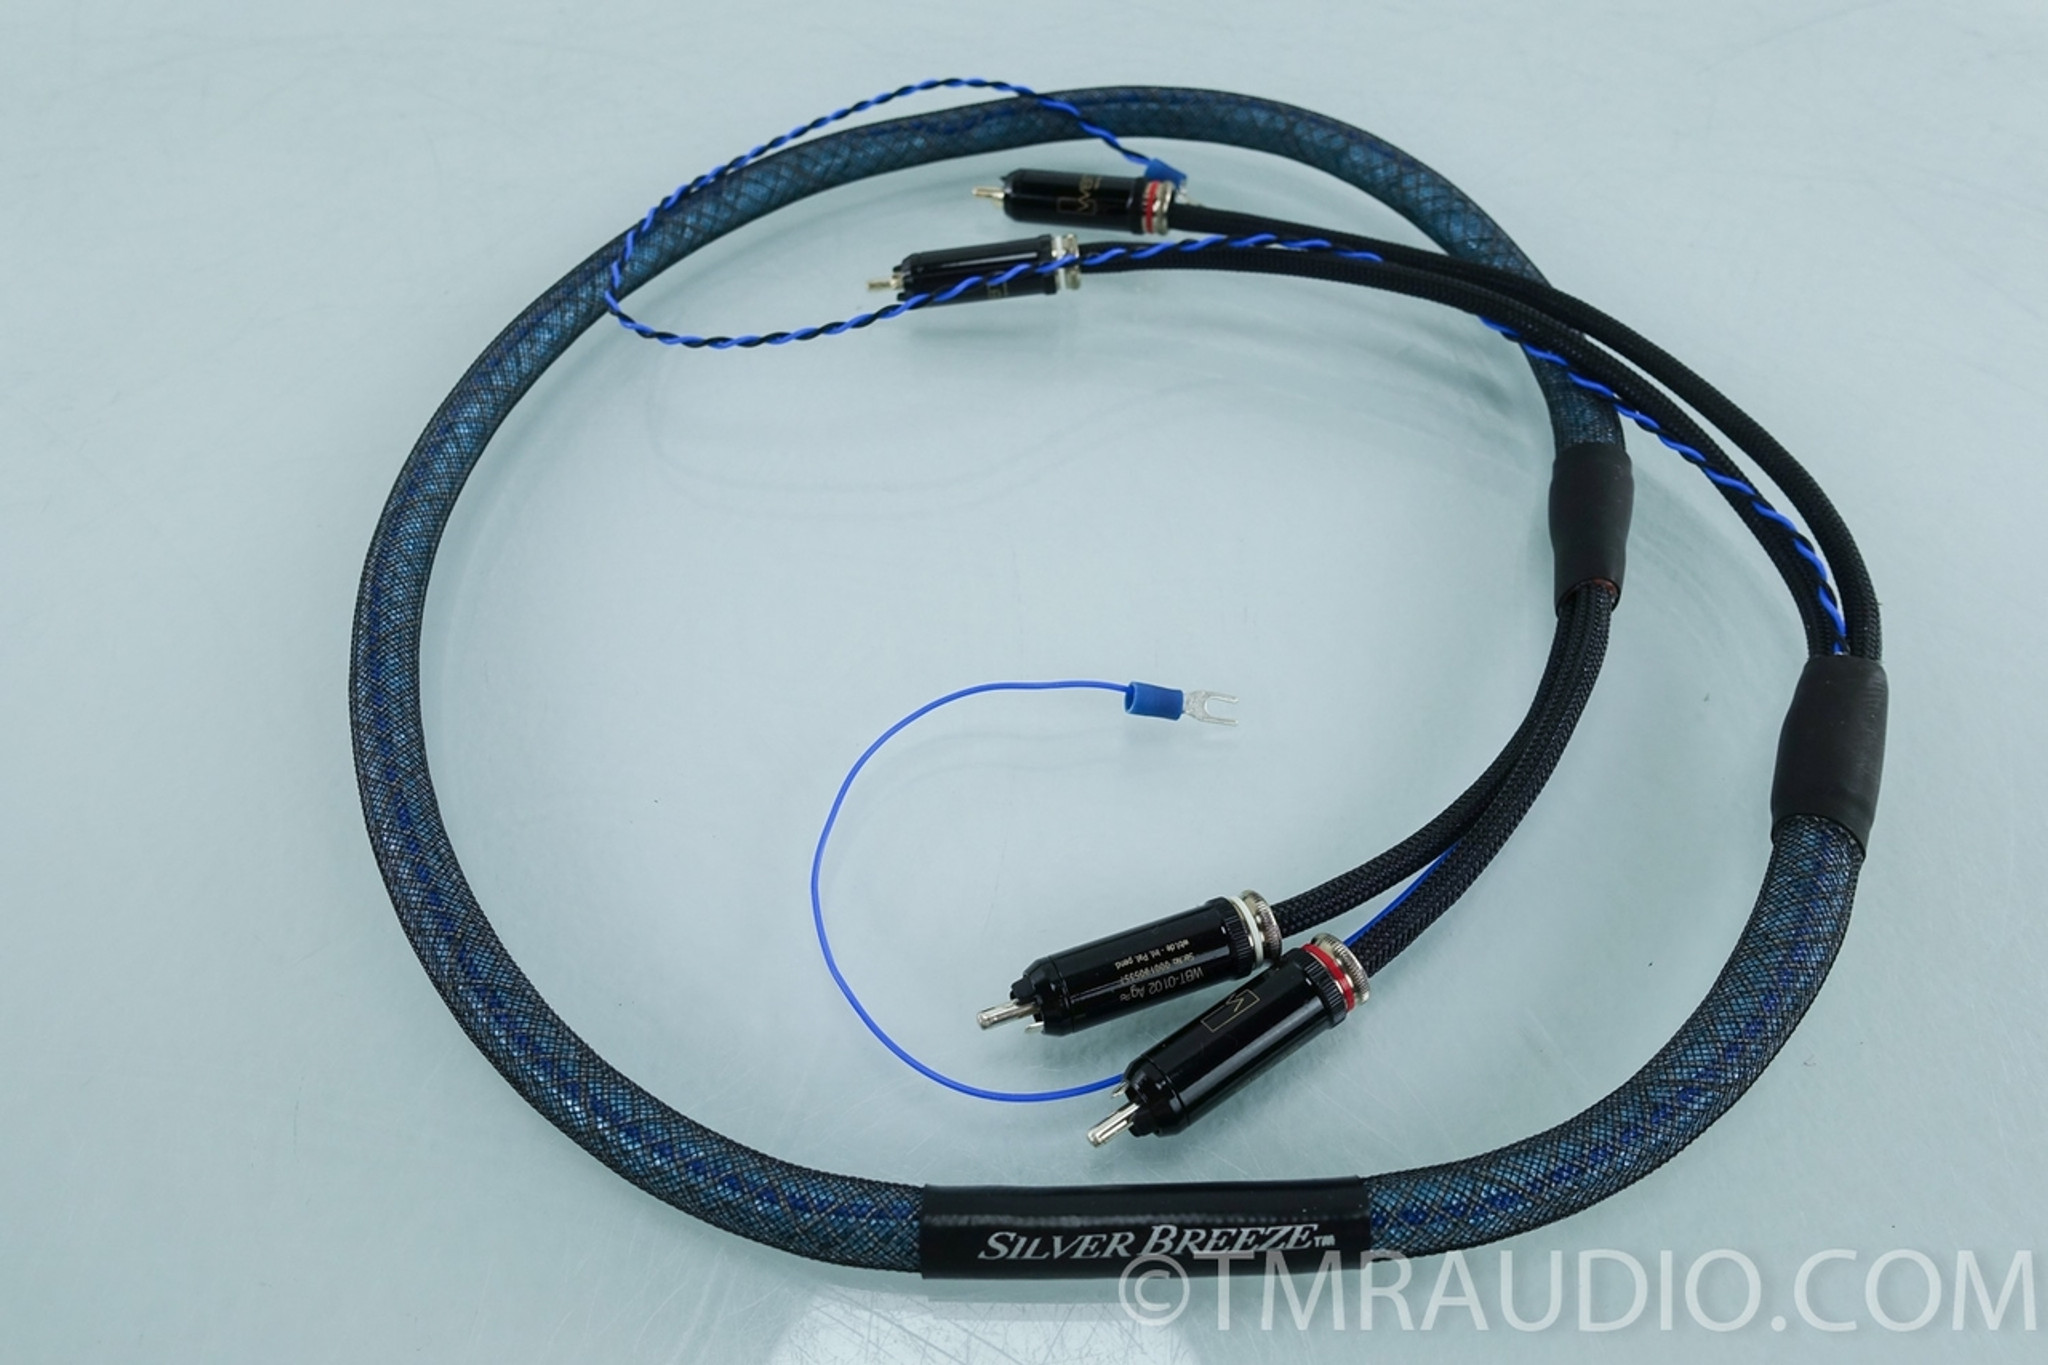 Silver Audio Silver Breeze RCA Cables 1.25m Phono Interconnects ...